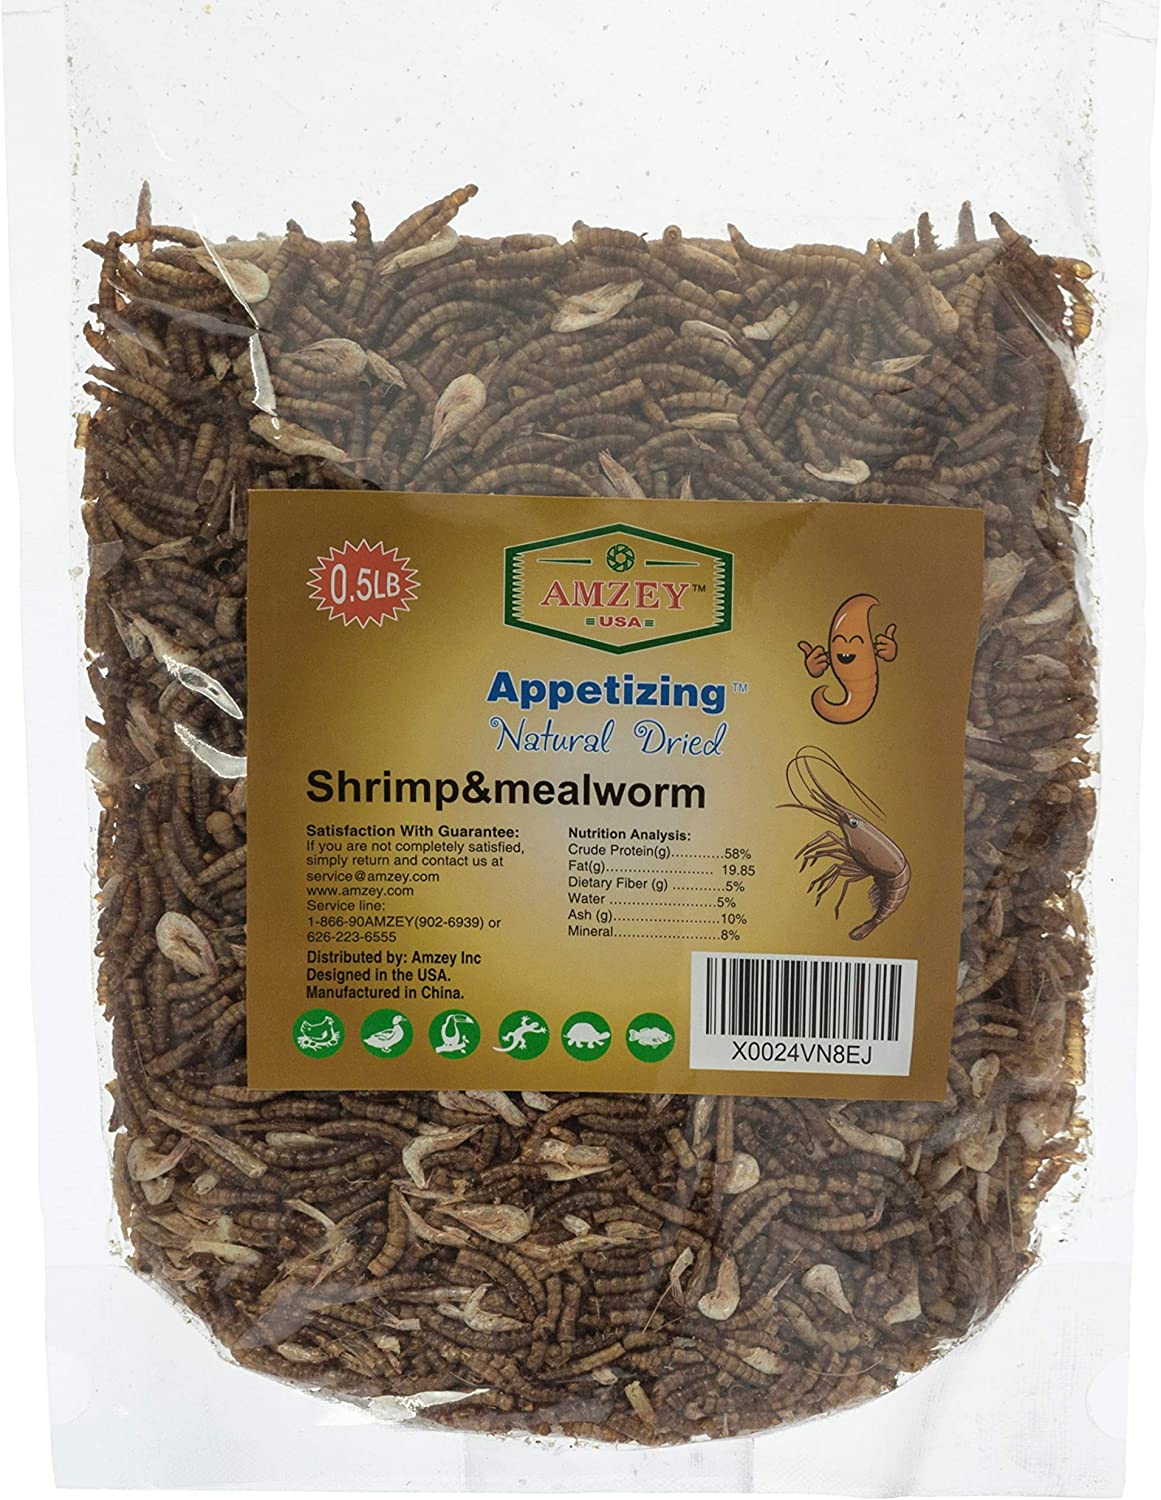 Appetizing Mealworms with Dried River Shrimp (8oz) All Natural 100% Non-GMO,Surf & Turf, Chicken, Fish, Ducks, Wild Birds, Turtles, Hamsters, Fish, and Hedgehogs